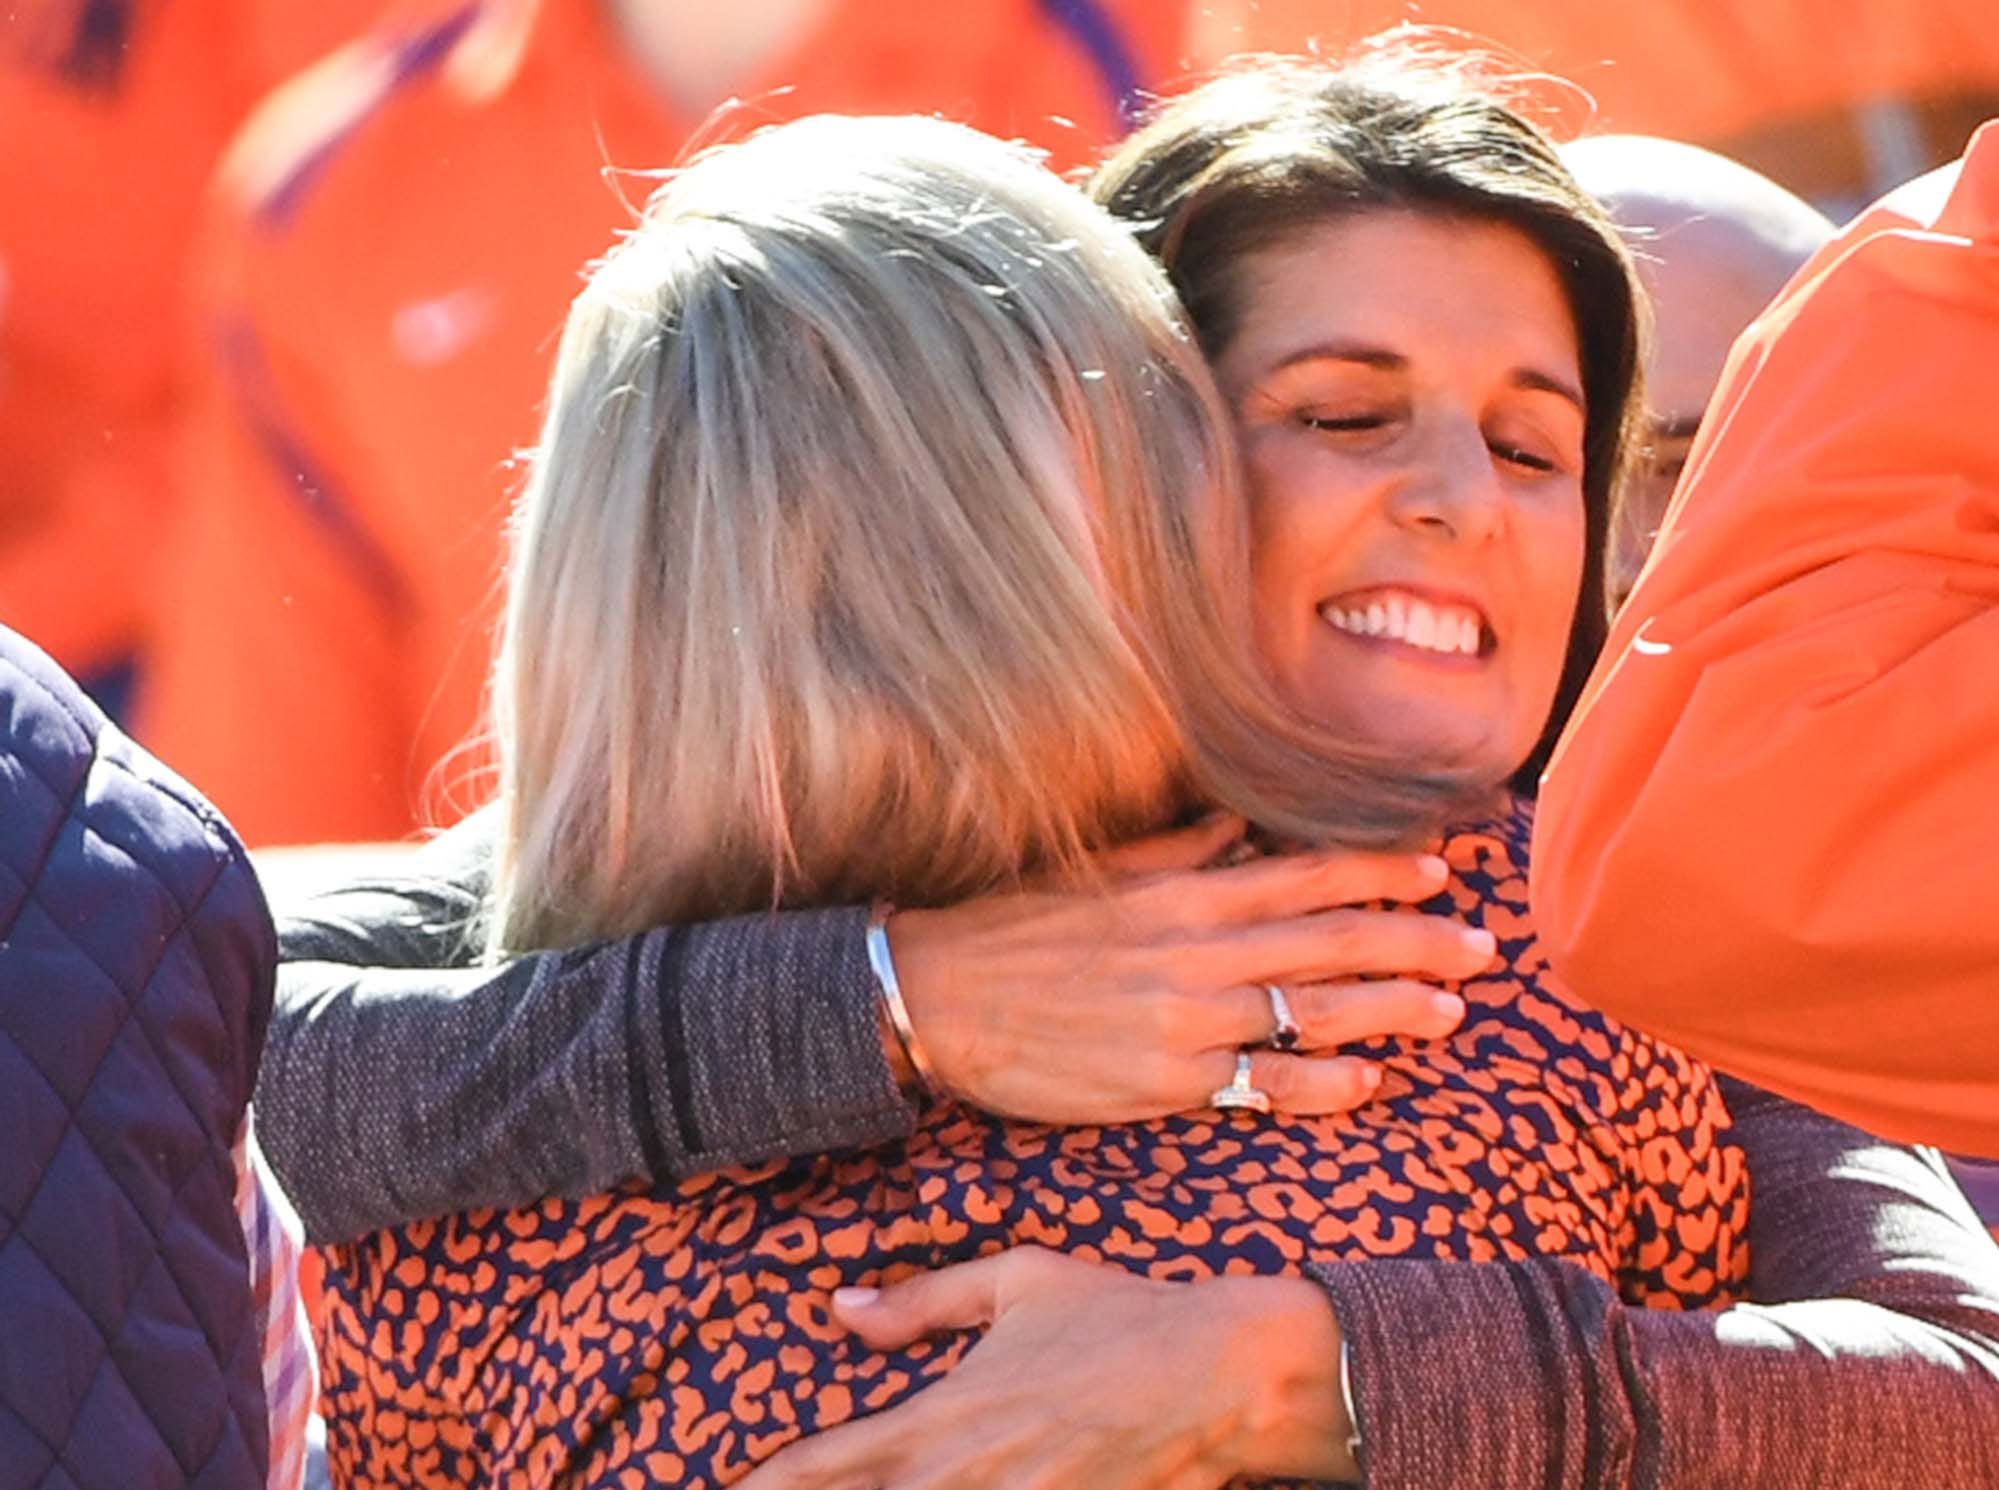 Former State Governor Nikki Haley hugs Beth Clements before the game in Memorial Stadium on Saturday, November 3, 2018.